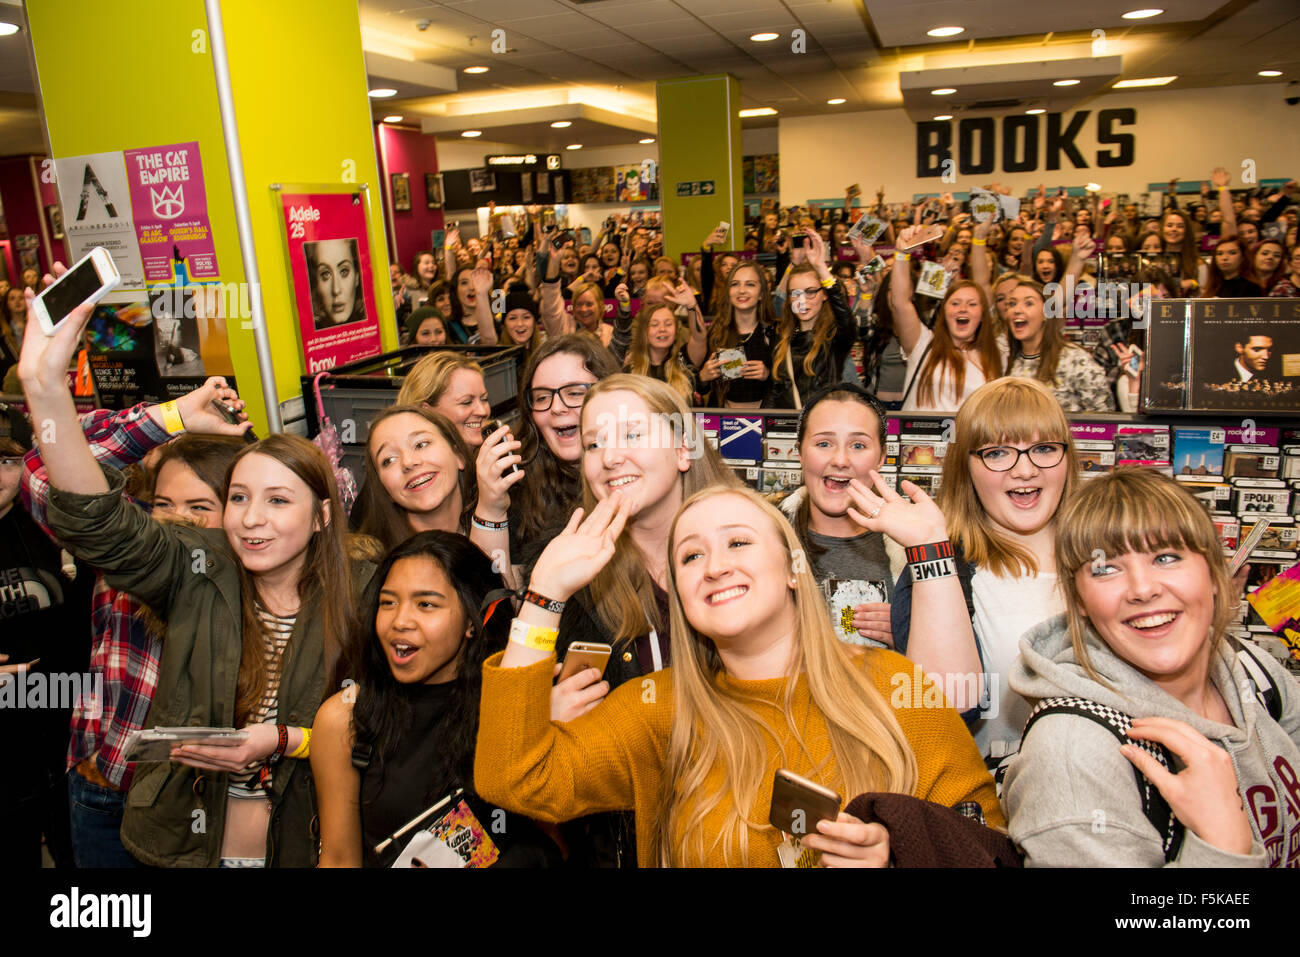 5 seconds of summer stock photos 5 seconds of summer stock images 05th nov 2015 fans wait to meet 5 seconds of m4hsunfo